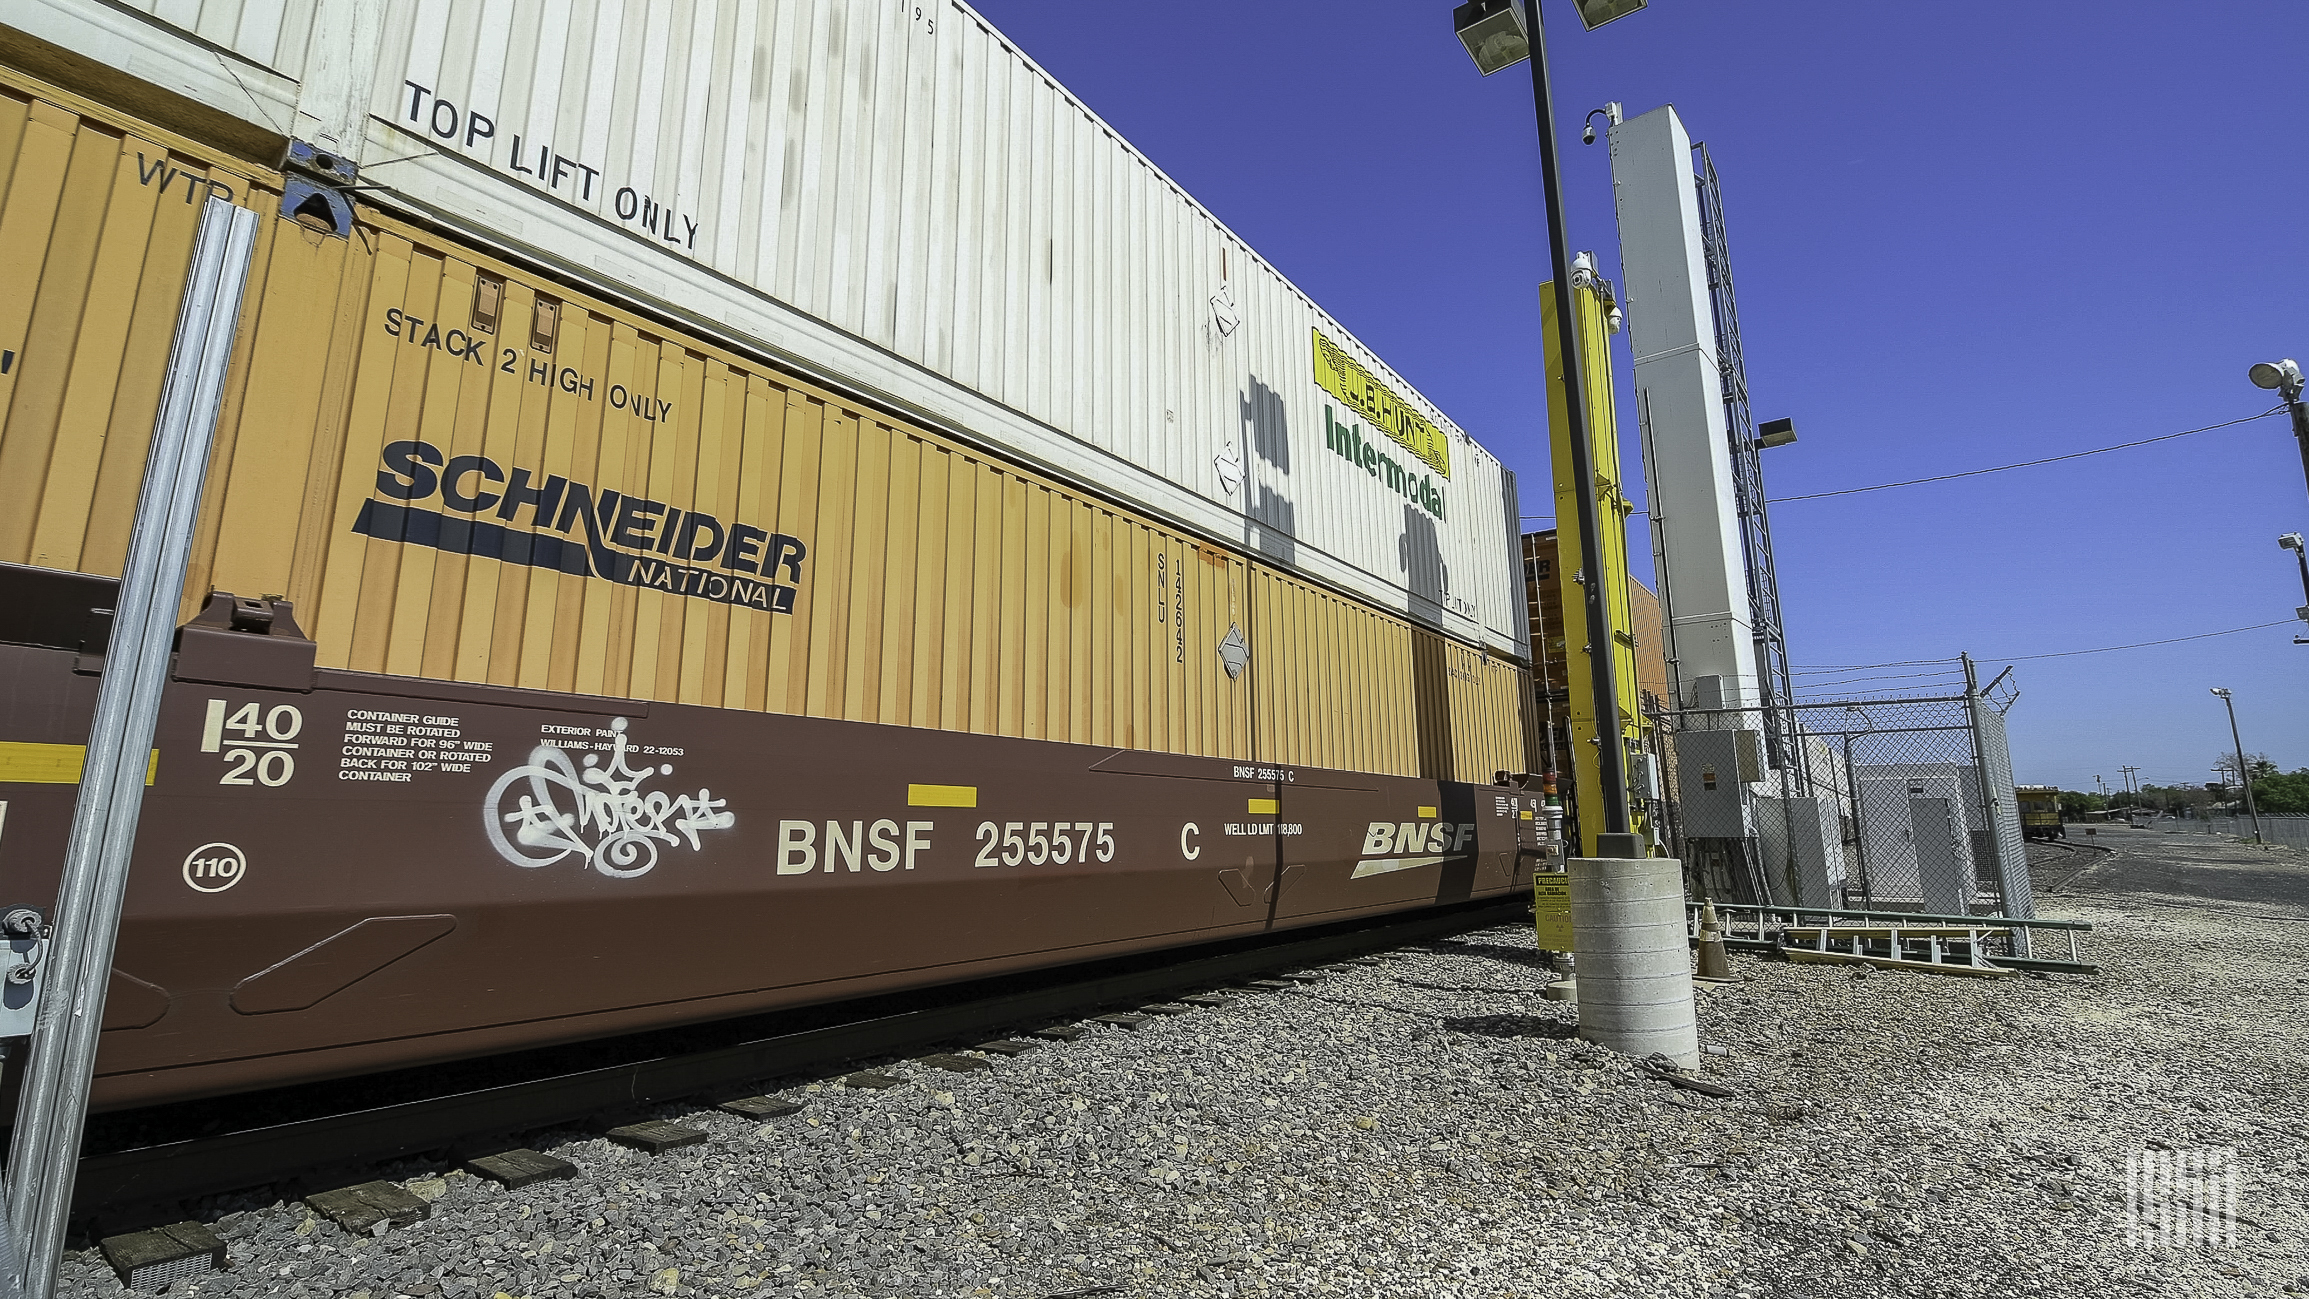 A photograph of intermodal containers stacked on a freight train.